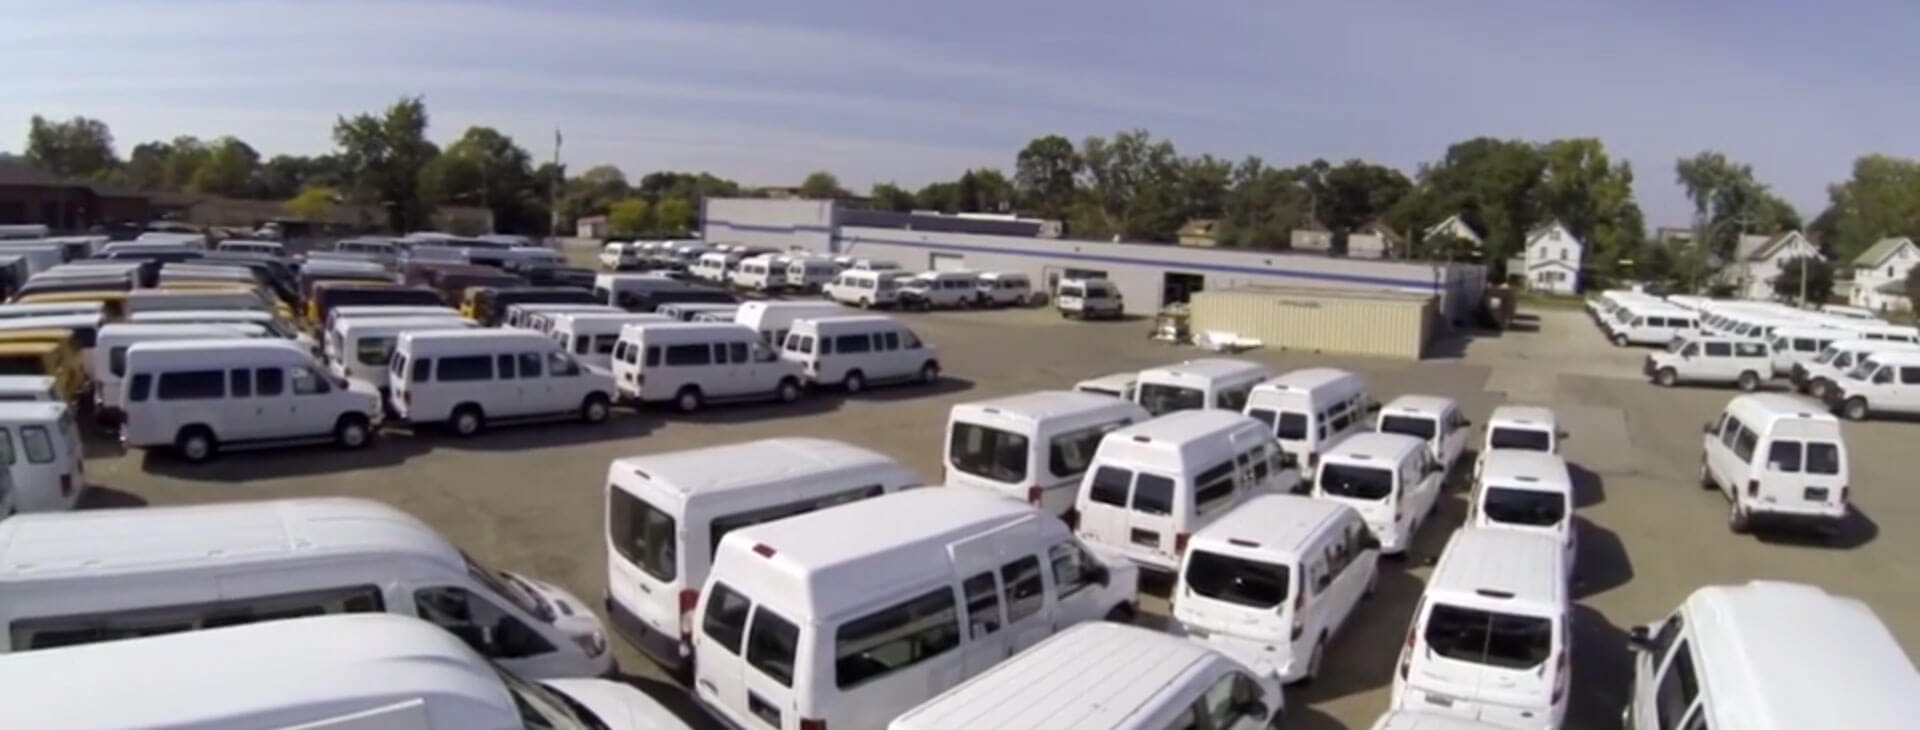 Ariel view of MobilityWorks Commercial lot